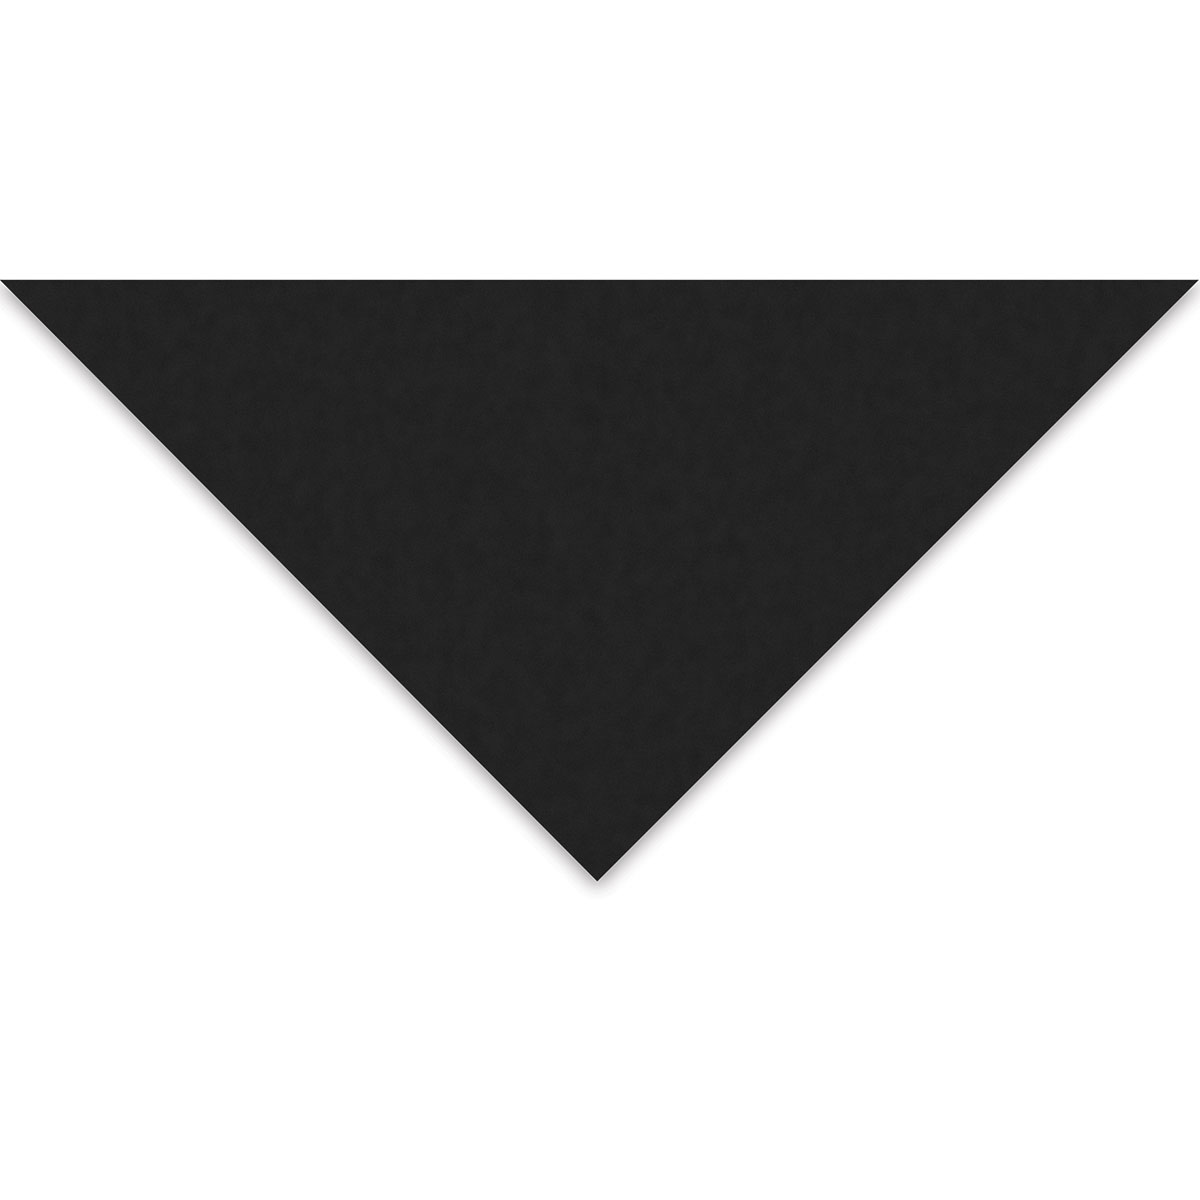 Strathmore Museum Mounting Board - 32 x 40 x 4-ply, Black